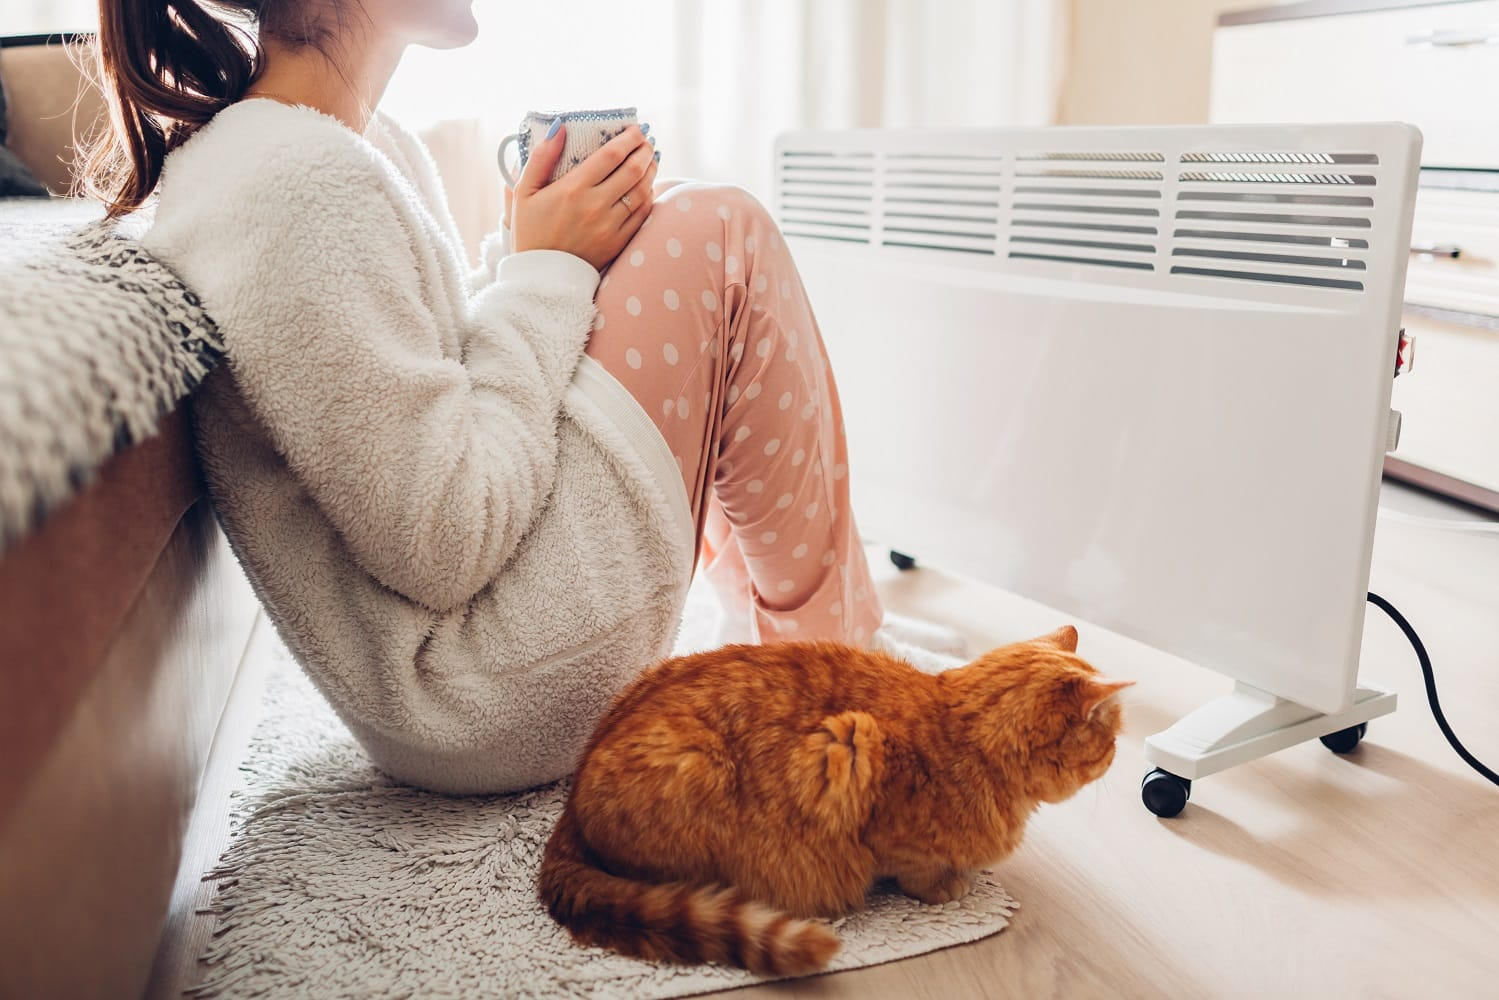 Using heater at home in winter. Woman warming and drinking tea with cat sitting by device and wearing warm clothes. Heating season.